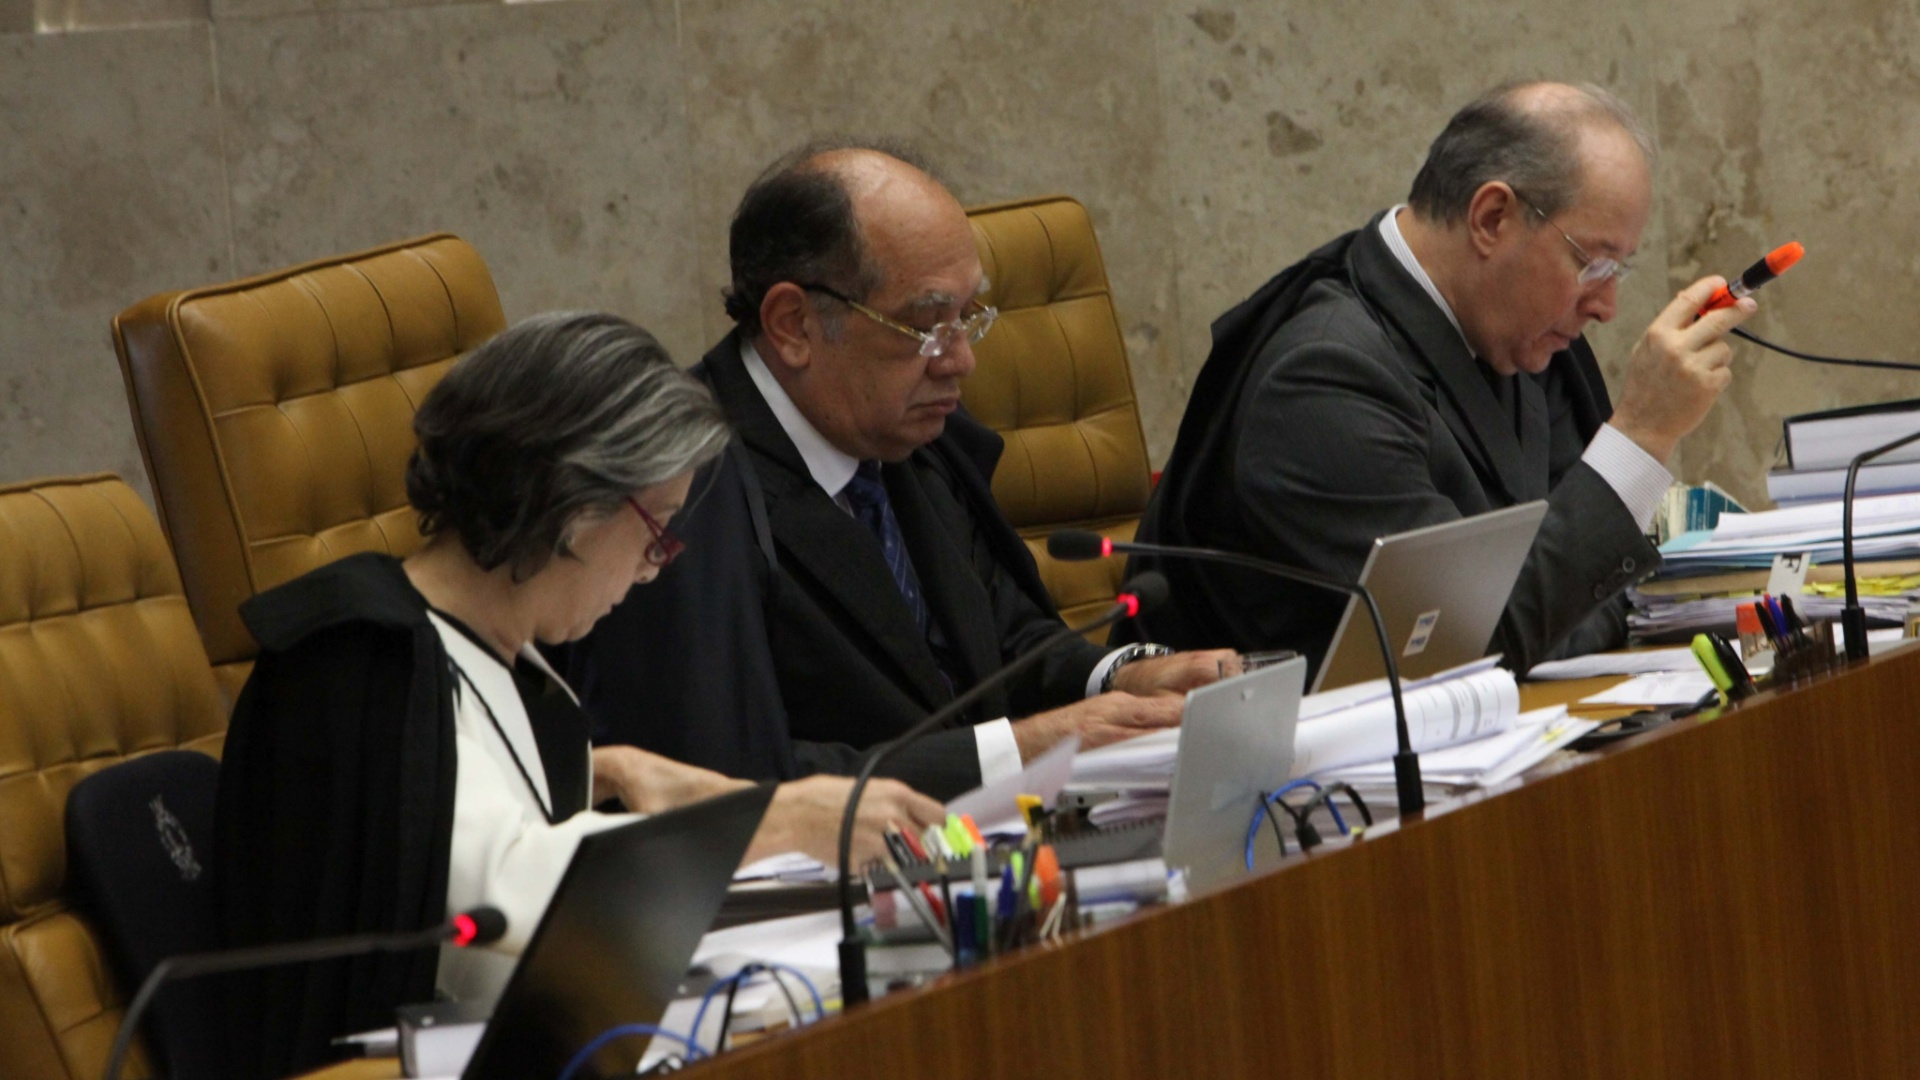 21.nov.2012 - A ministra Carmen Lcia ( esq.), o ministro Gilmar Mendes (centro) e o ministro Celso de Mello acompanham a sesso do julgamento do mensalo, nesta quarta-feira